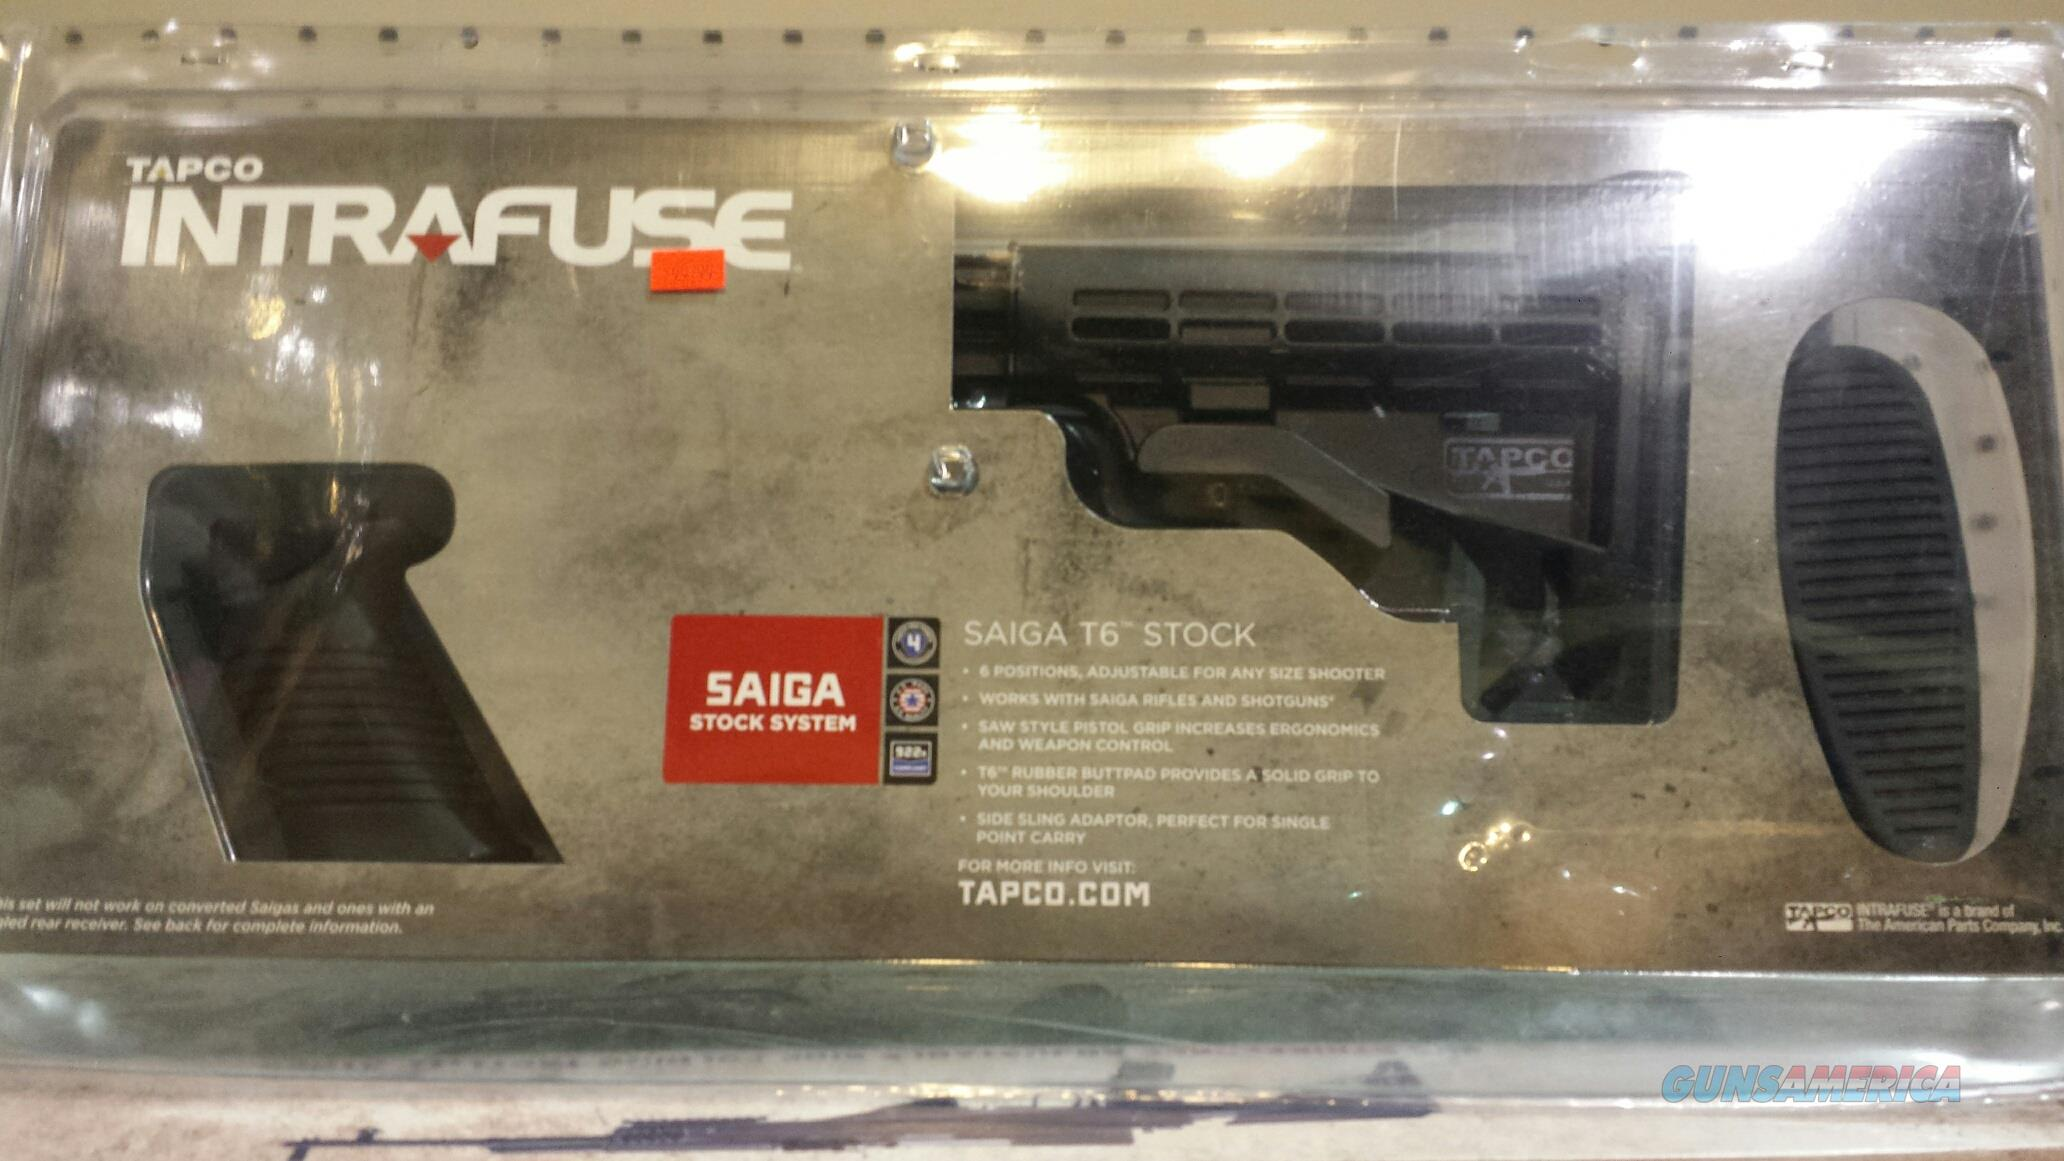 Products Stock Saiga 308 Tapco